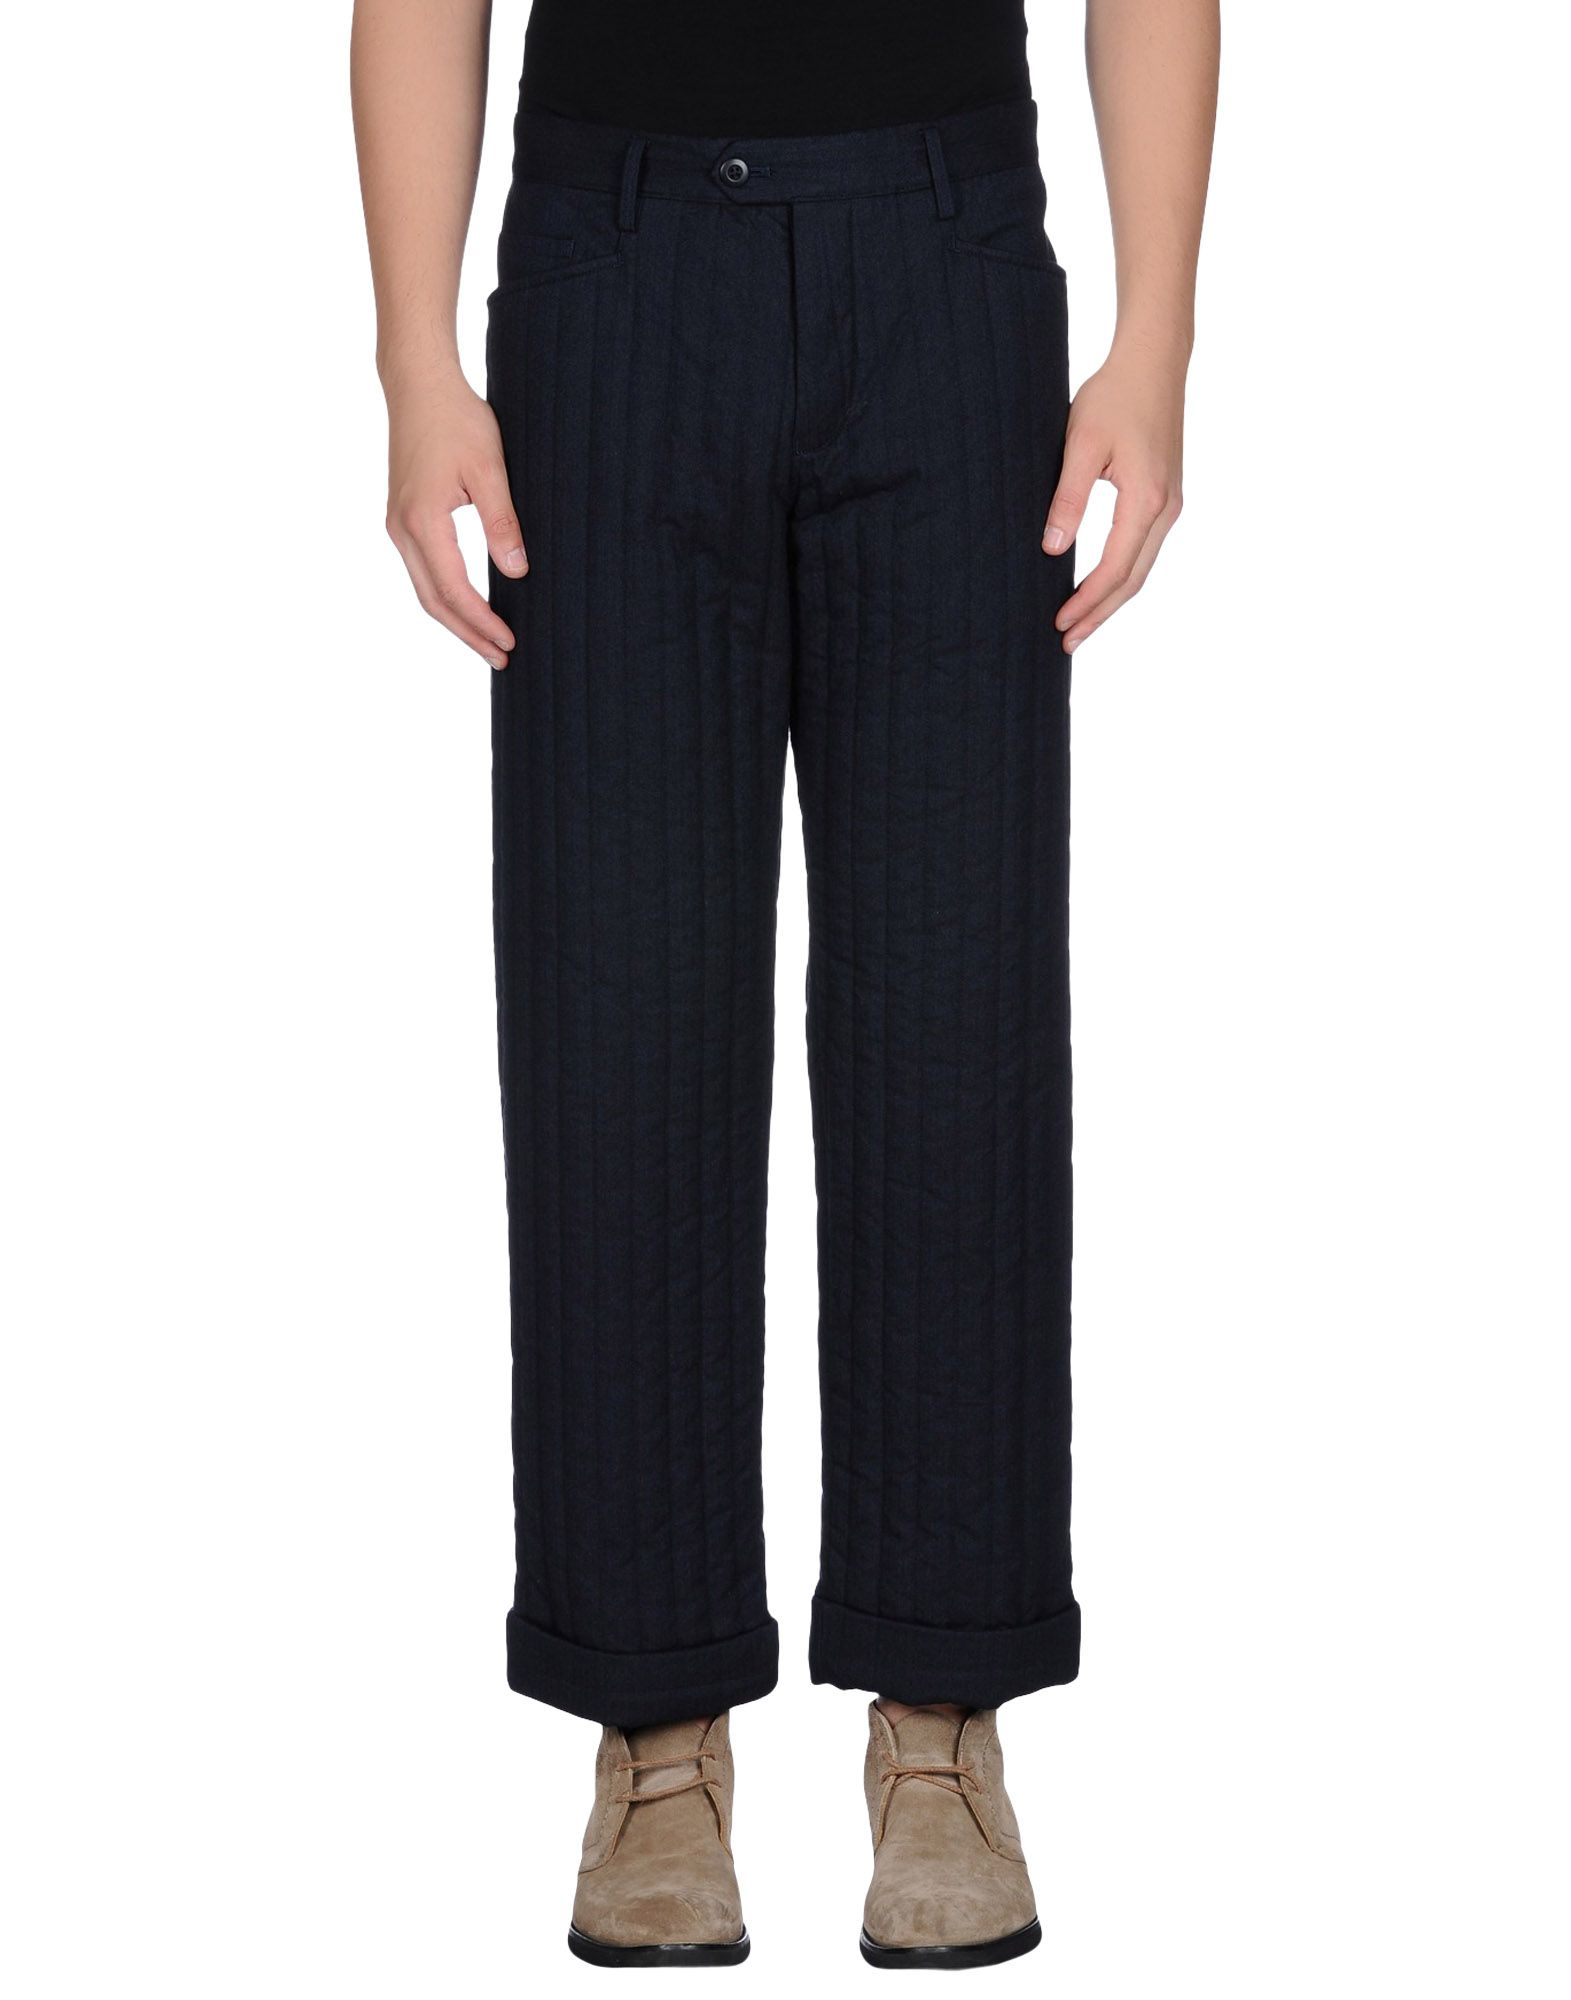 TROUSERS - Casual trousers TS(S)